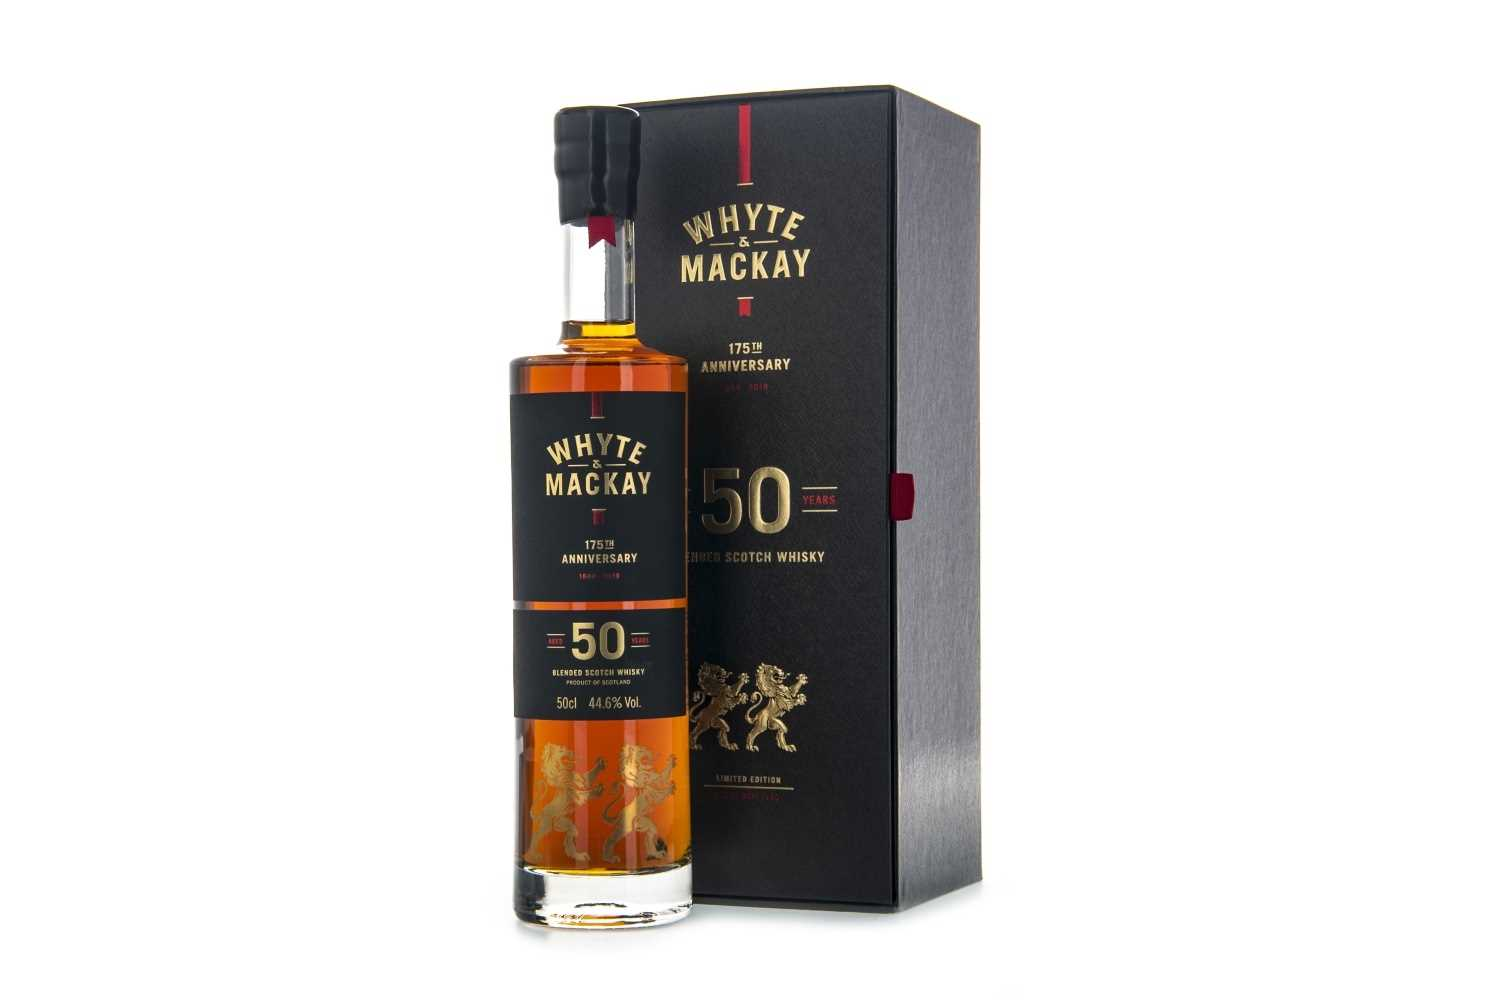 Lot 73 - WHYTE & MACKAY 175TH ANNIVERSARY 50 YEARS OLD - 50CL